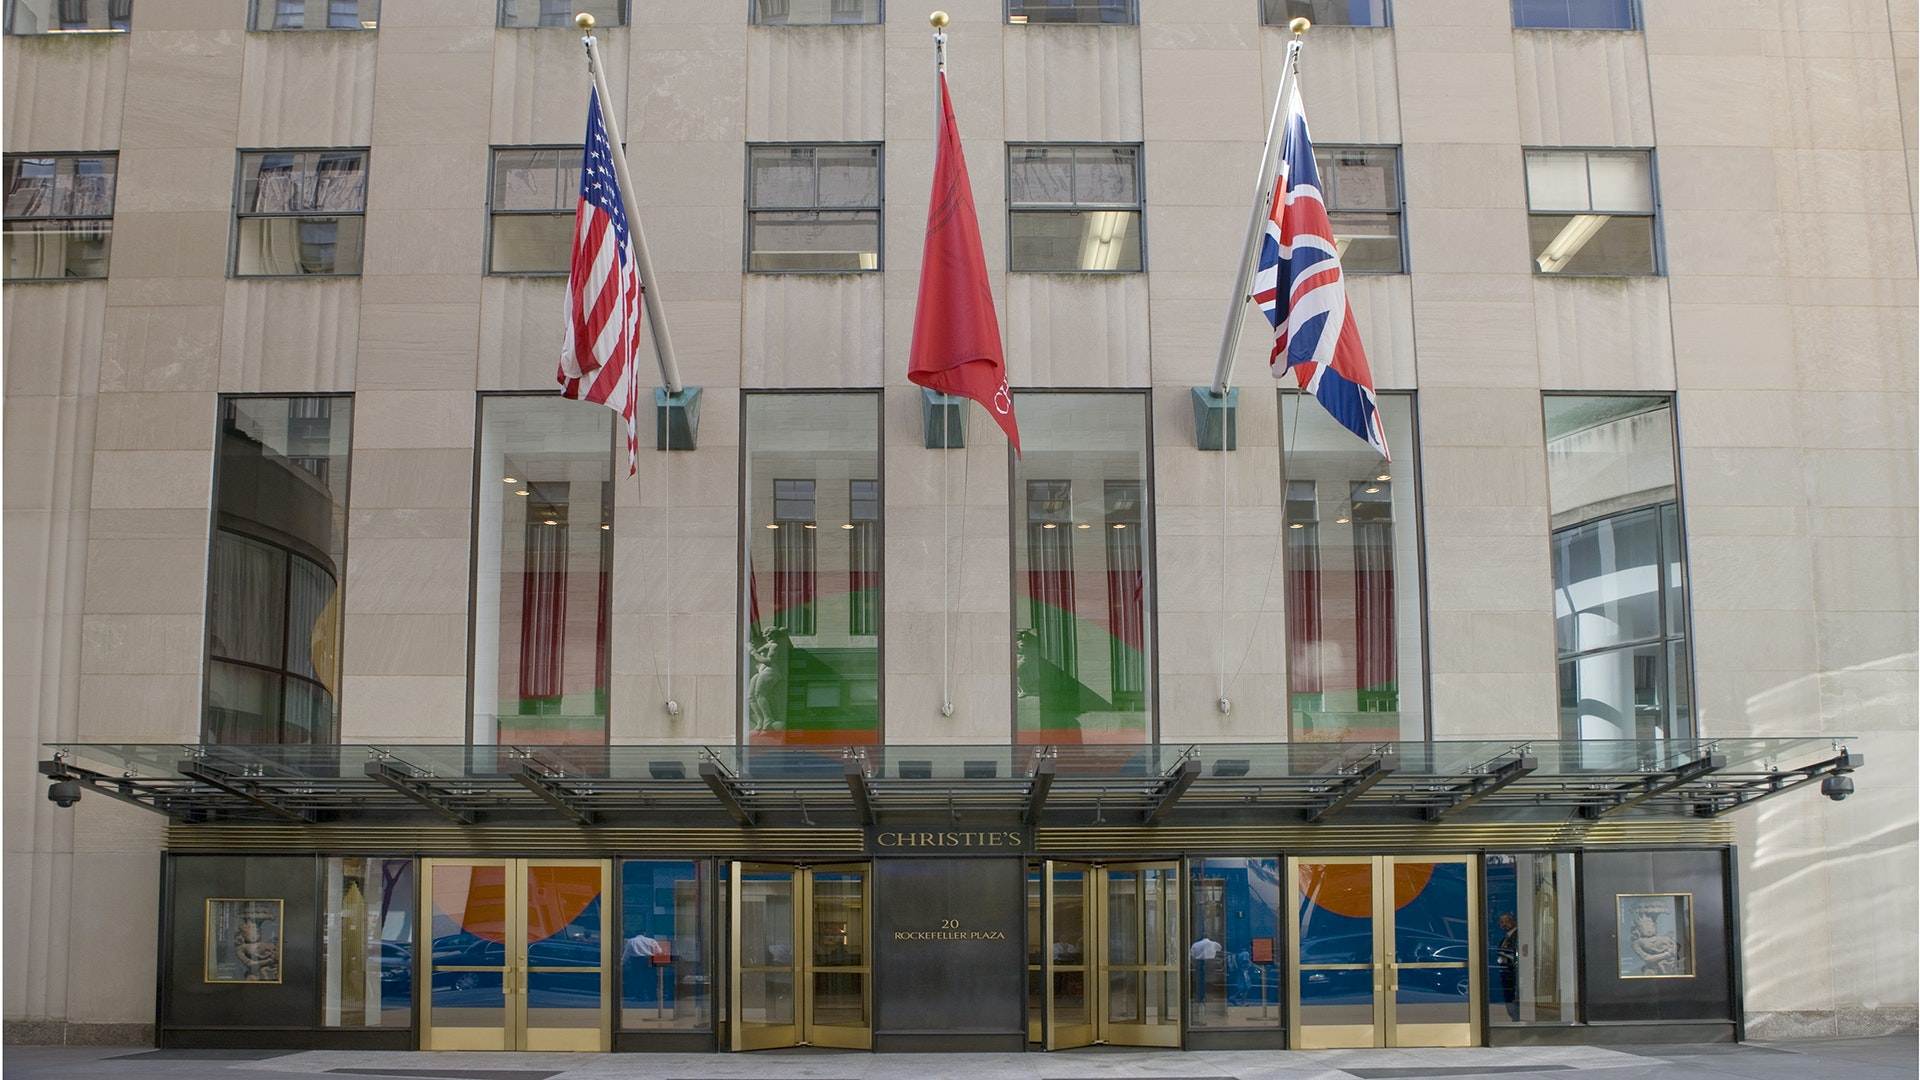 Find Christie's 310,000-square-foot New York facility at 20 Rockefeller Plaza in Manhattan.